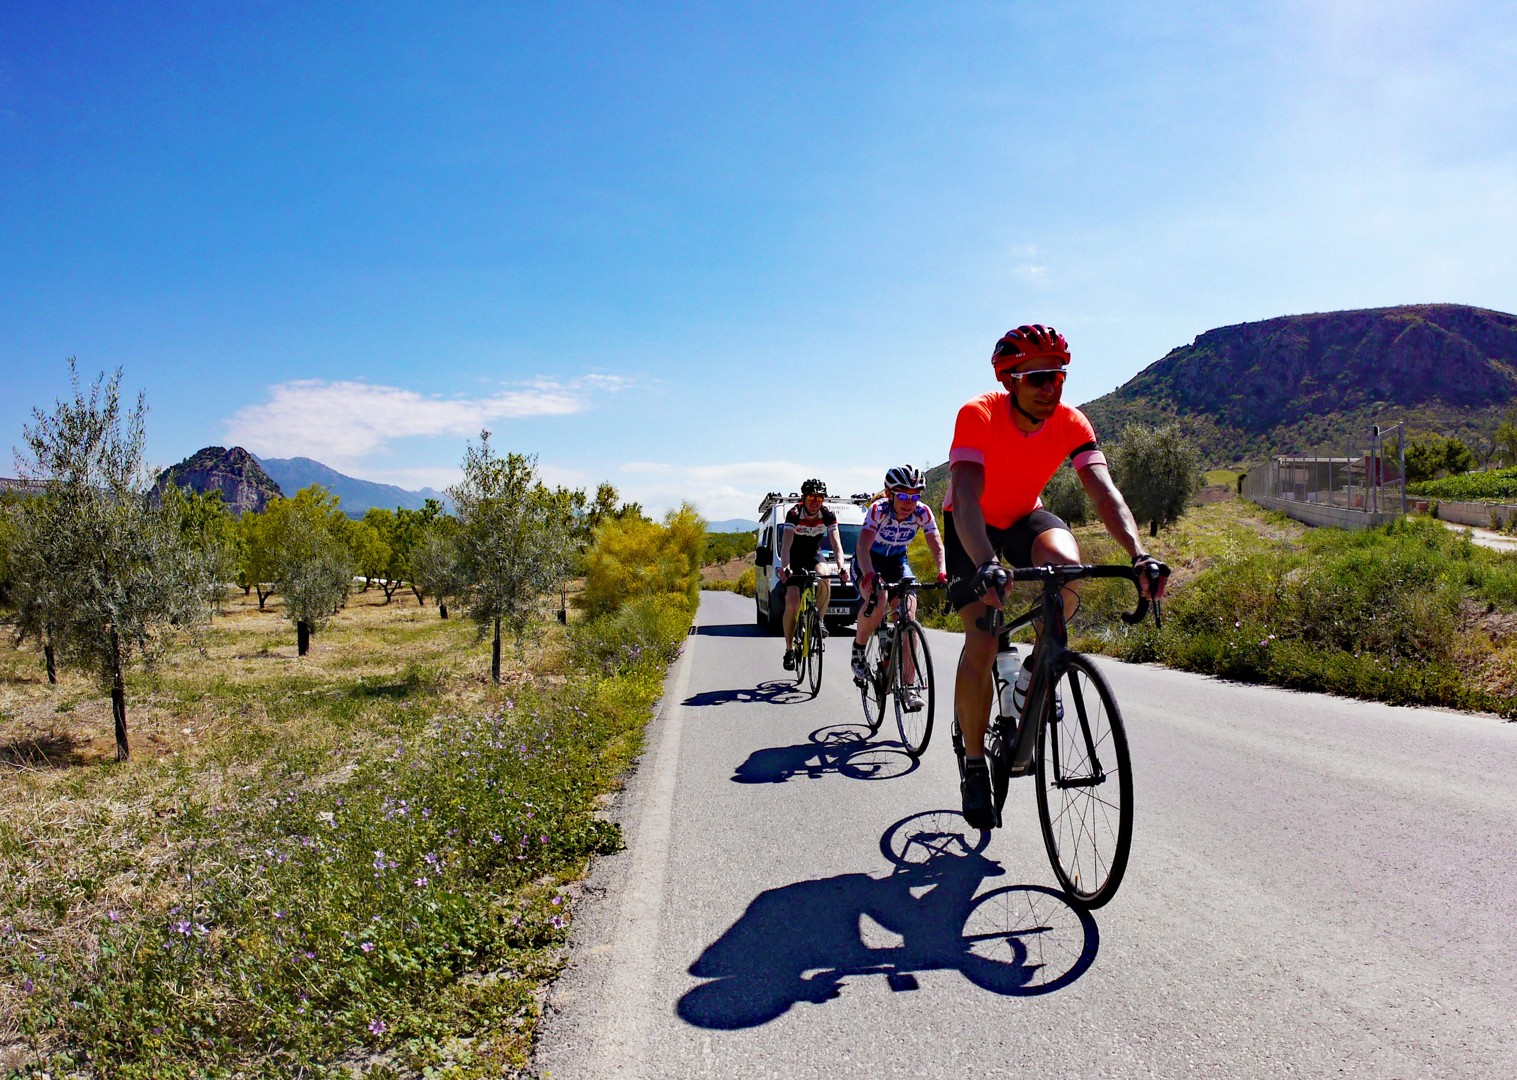 road-cycling-holiday-del-norte-al-sur.jpg - Spain - Basque Country to Andalucia - North to South - 16 Day - Guided Road Cycling Holiday - Road Cycling